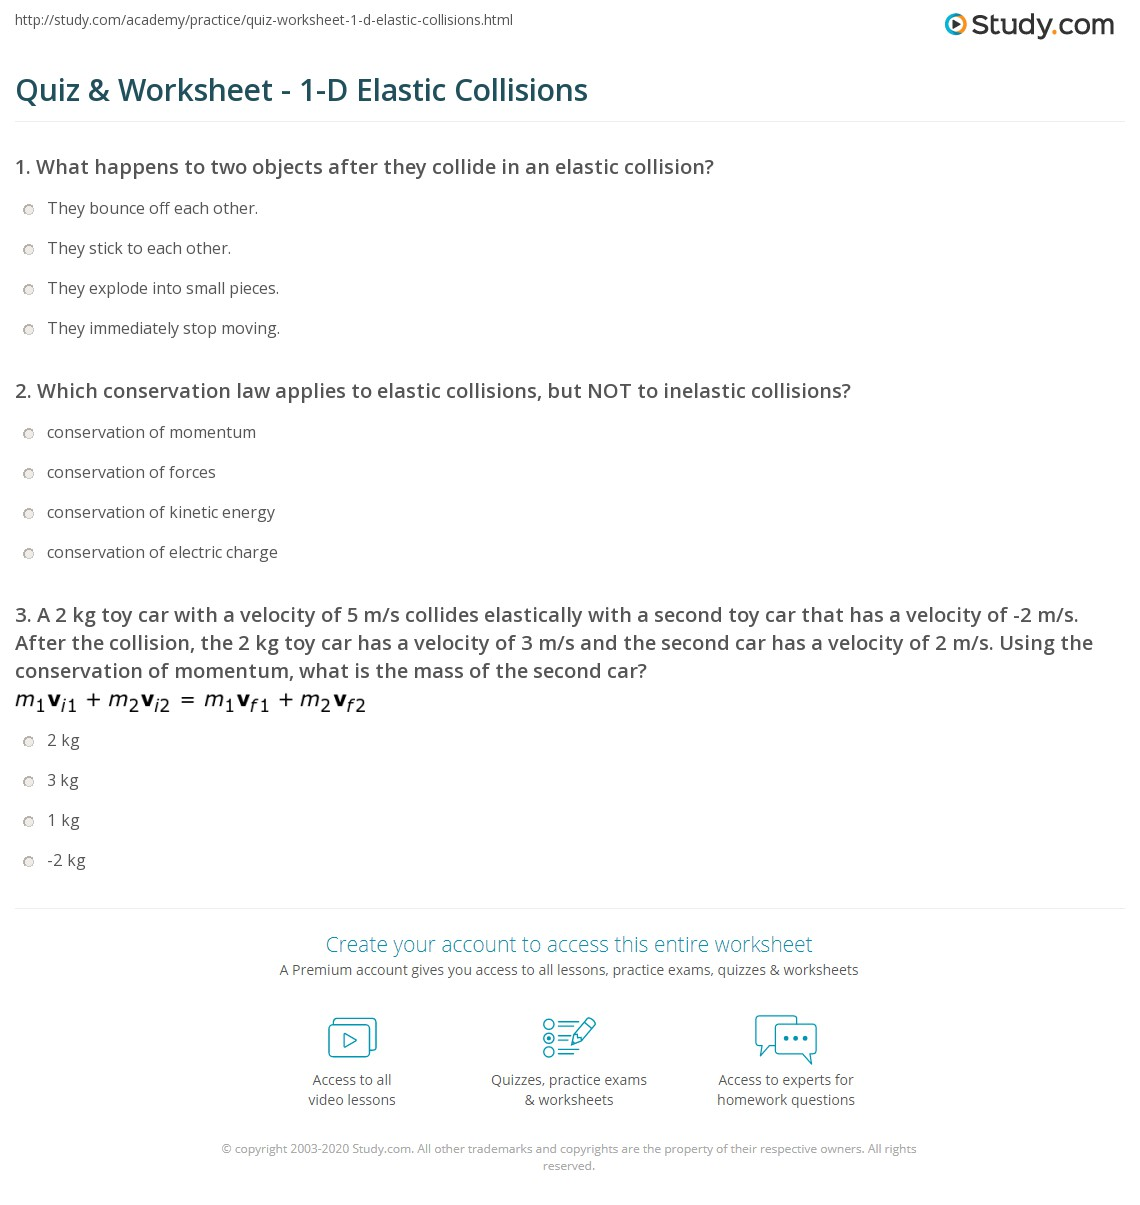 Quiz & Worksheet - 1-D Elastic Collisions | Study.com